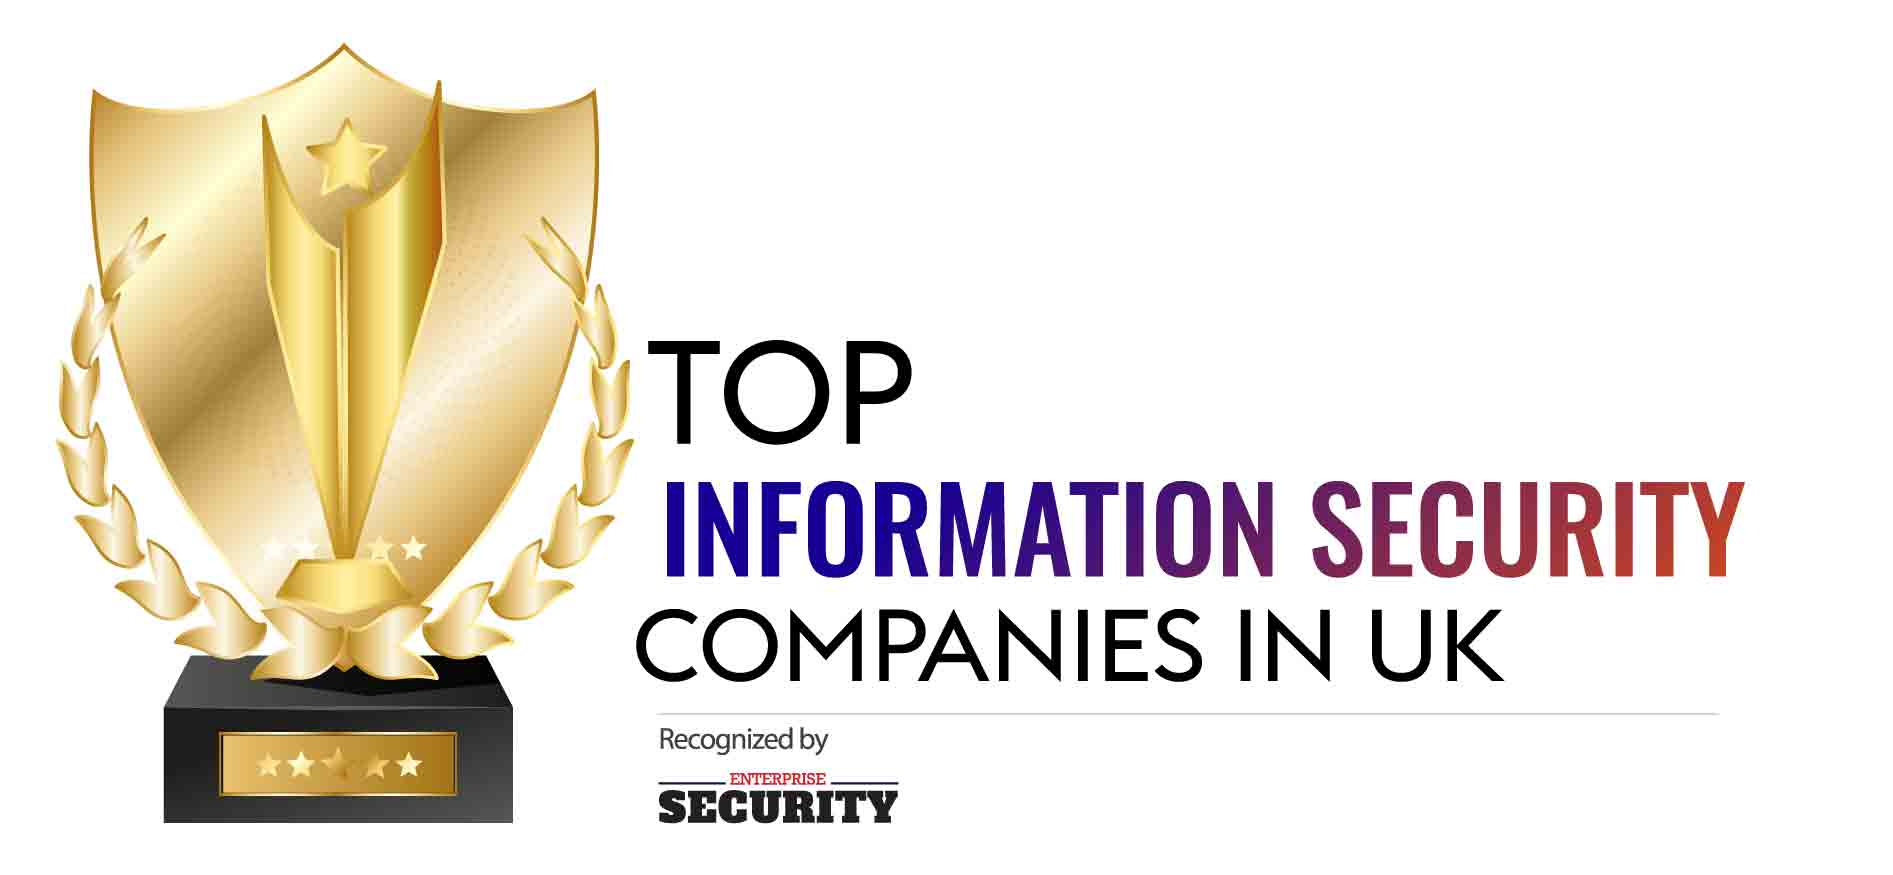 Top Information Security Companies in UK